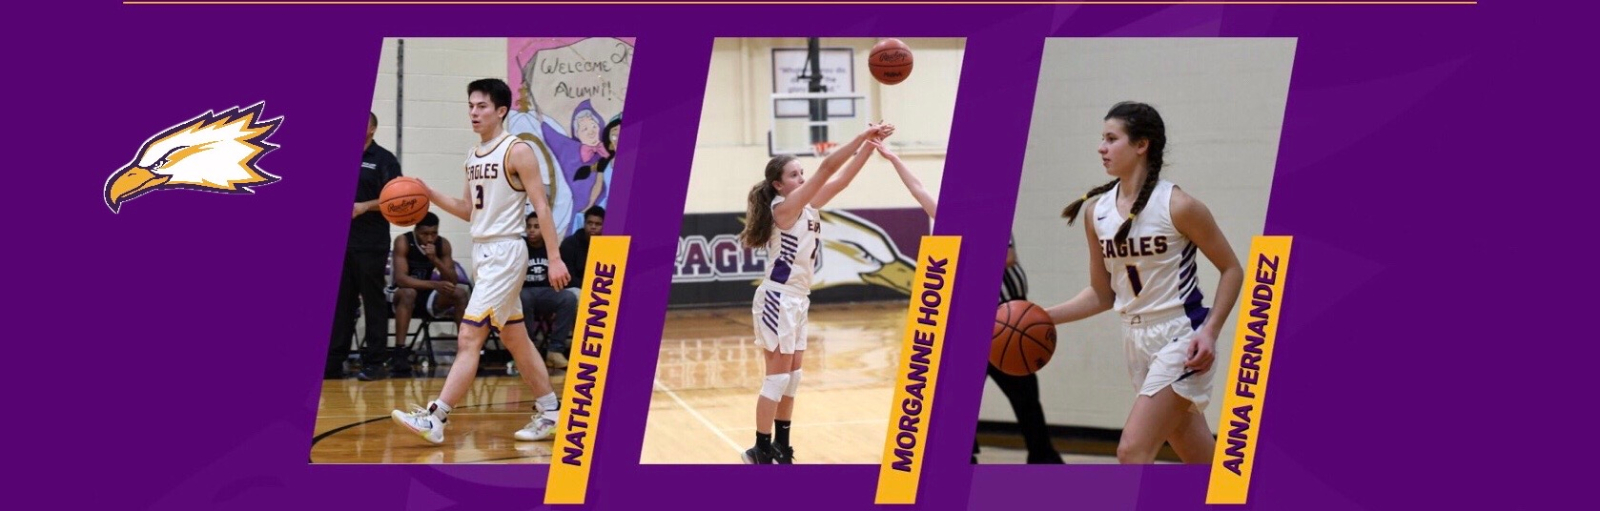 Anna Fernandez, Morganne Houk, and Nathan Etnyre Earn All-State Honors